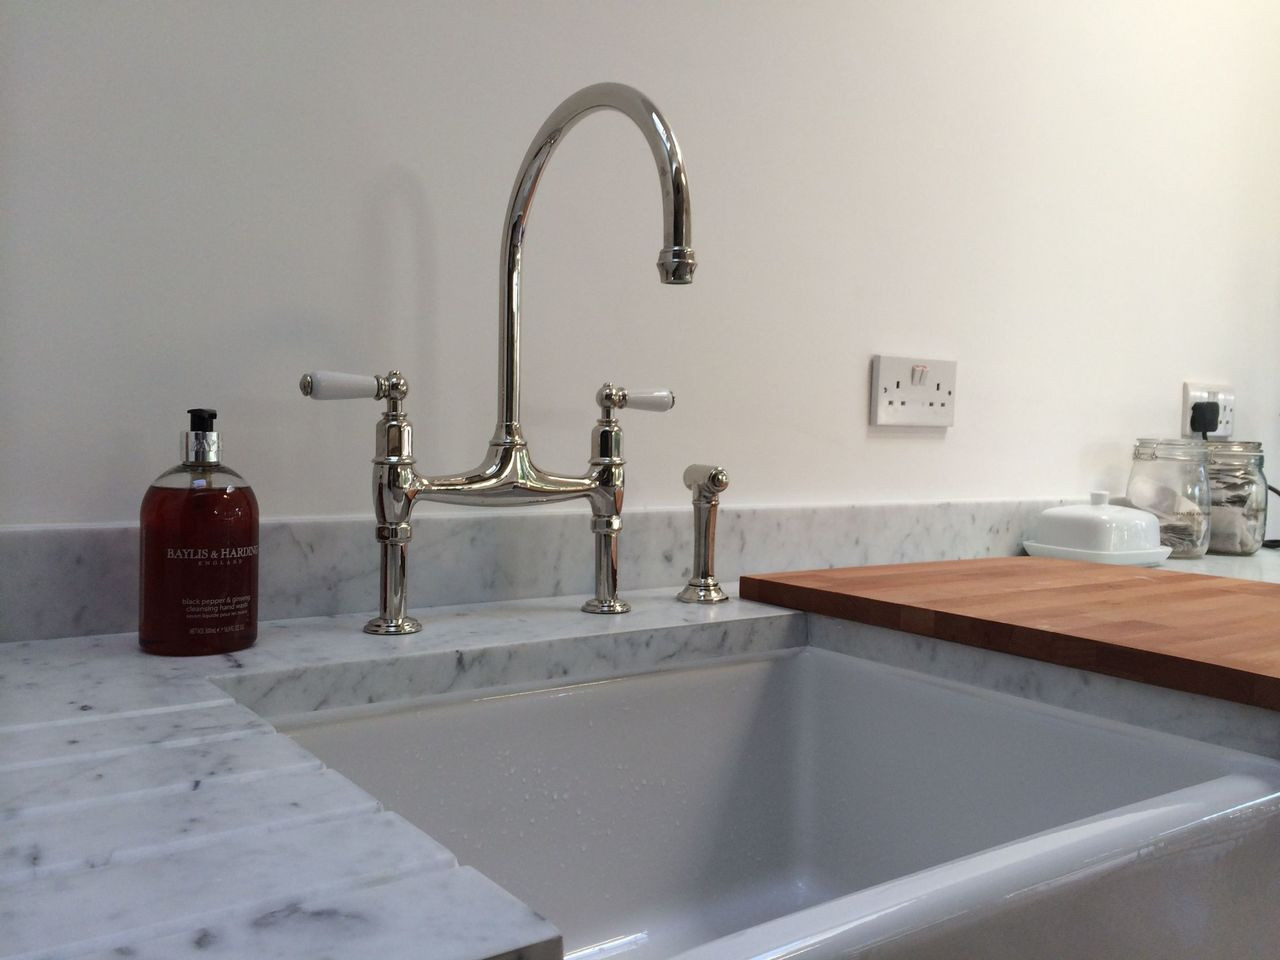 bronze kitchen deck rowe handle shop and faucet bridge rohl perrin faucets pd mount english